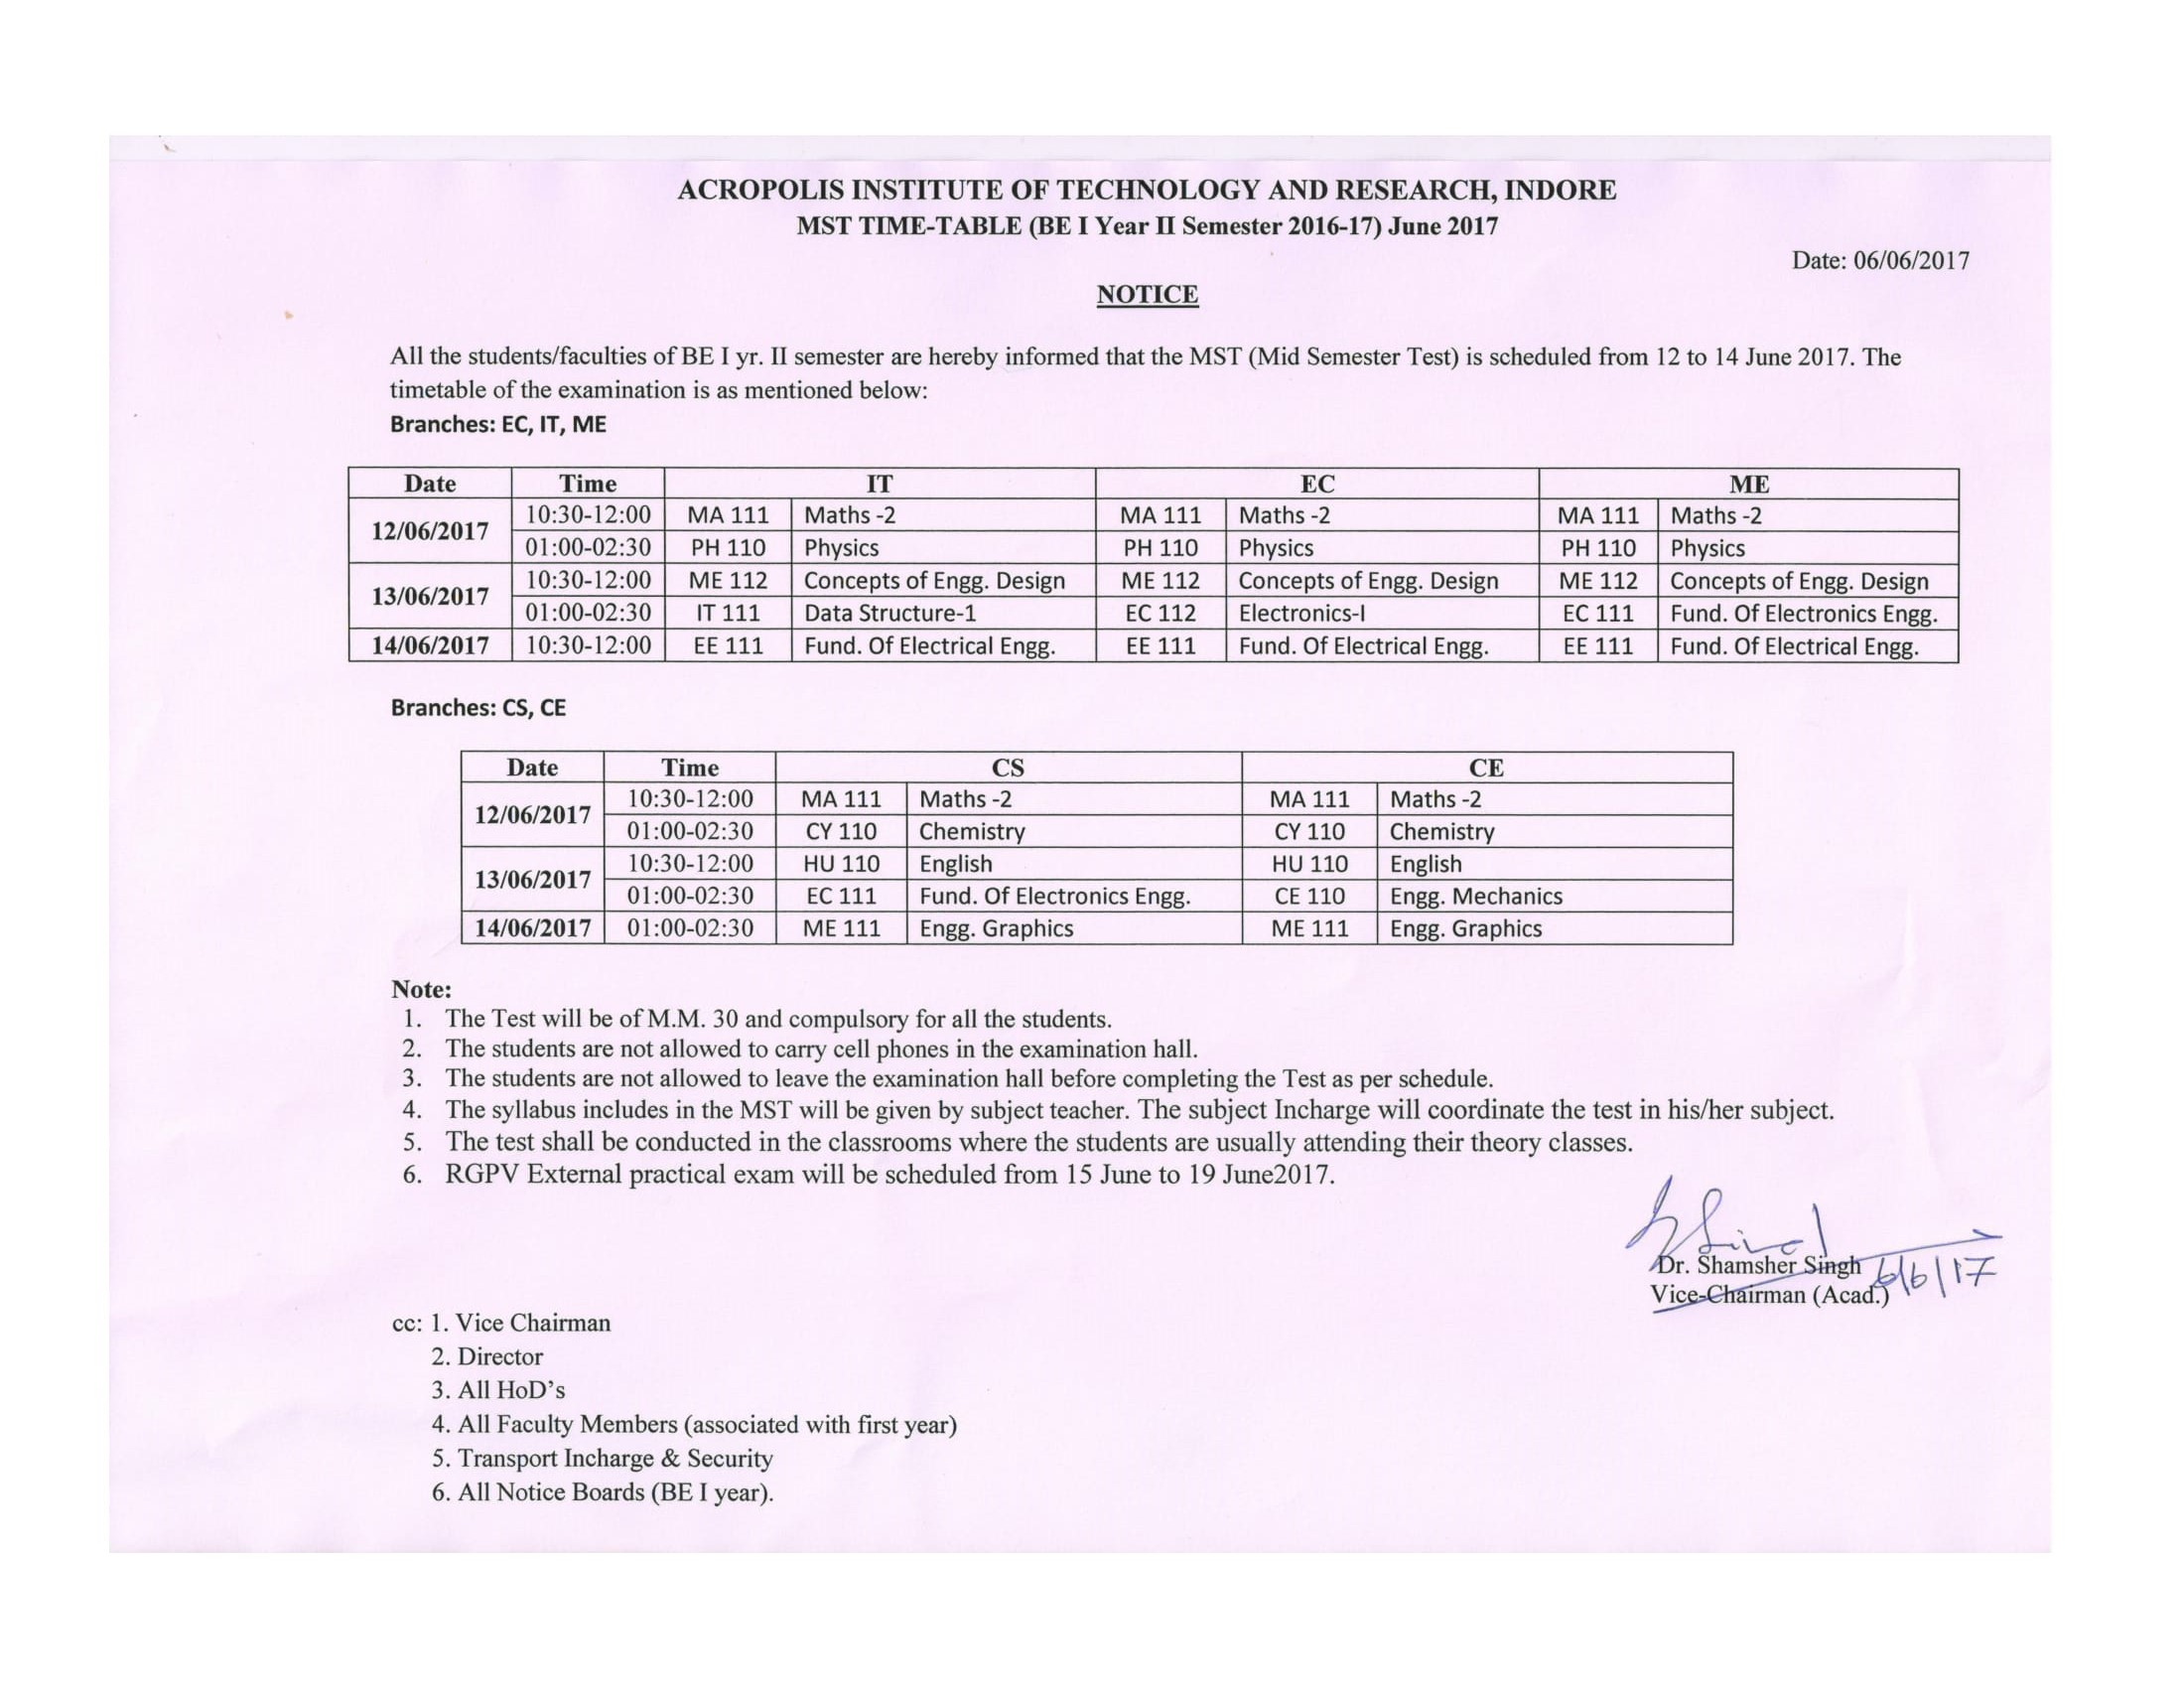 mst time table-1